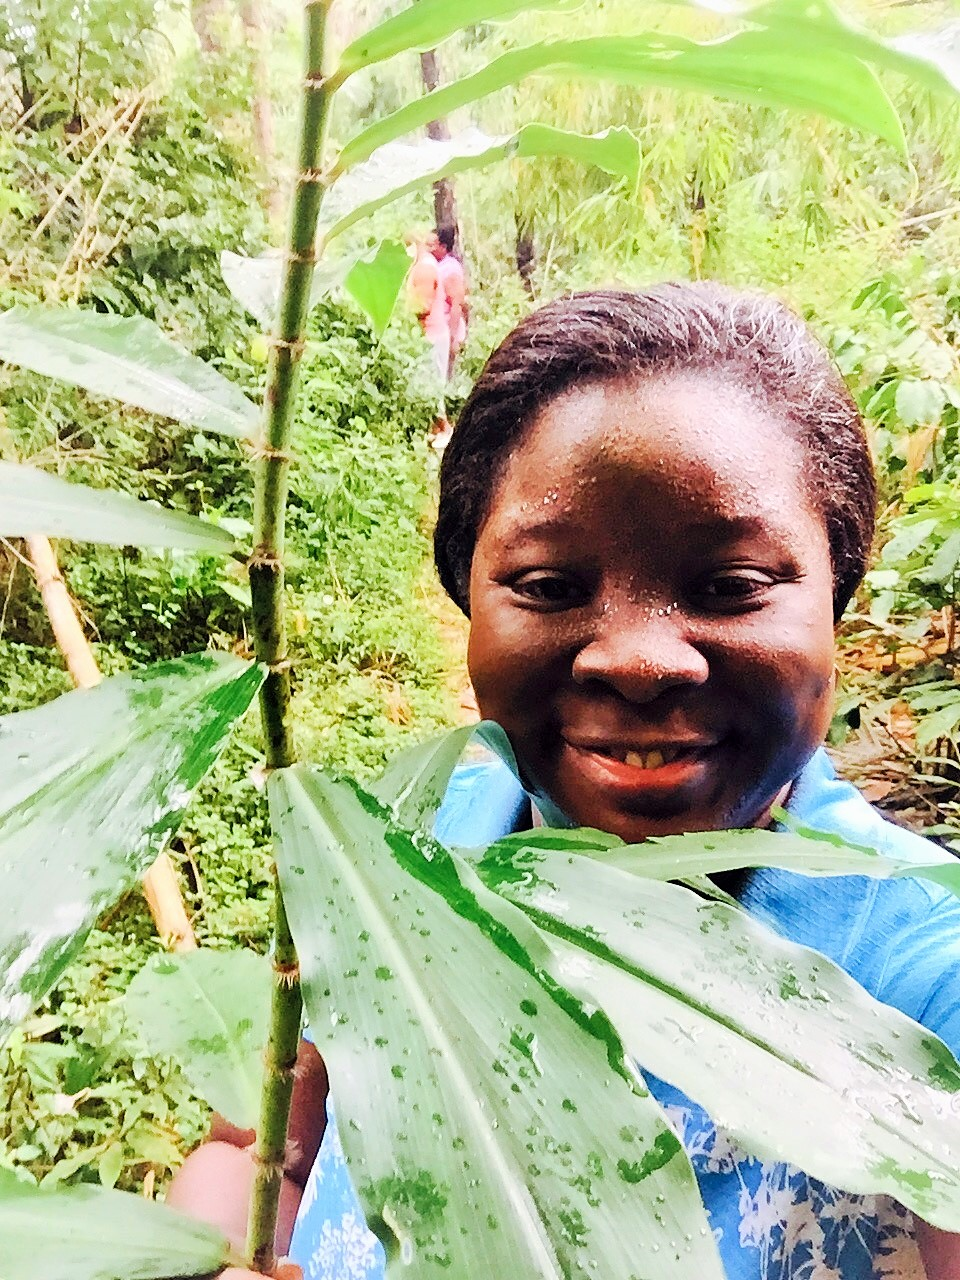 NGWO PINE FOREST On our way up the hill, the couple cut this plant and handed it to me. They said it cures all types of sickness. Sadly, I can't remember the name of the plant now but before I could say thank you and finish taking a picture with it, the driver collected the plant from me. Haba!. lol